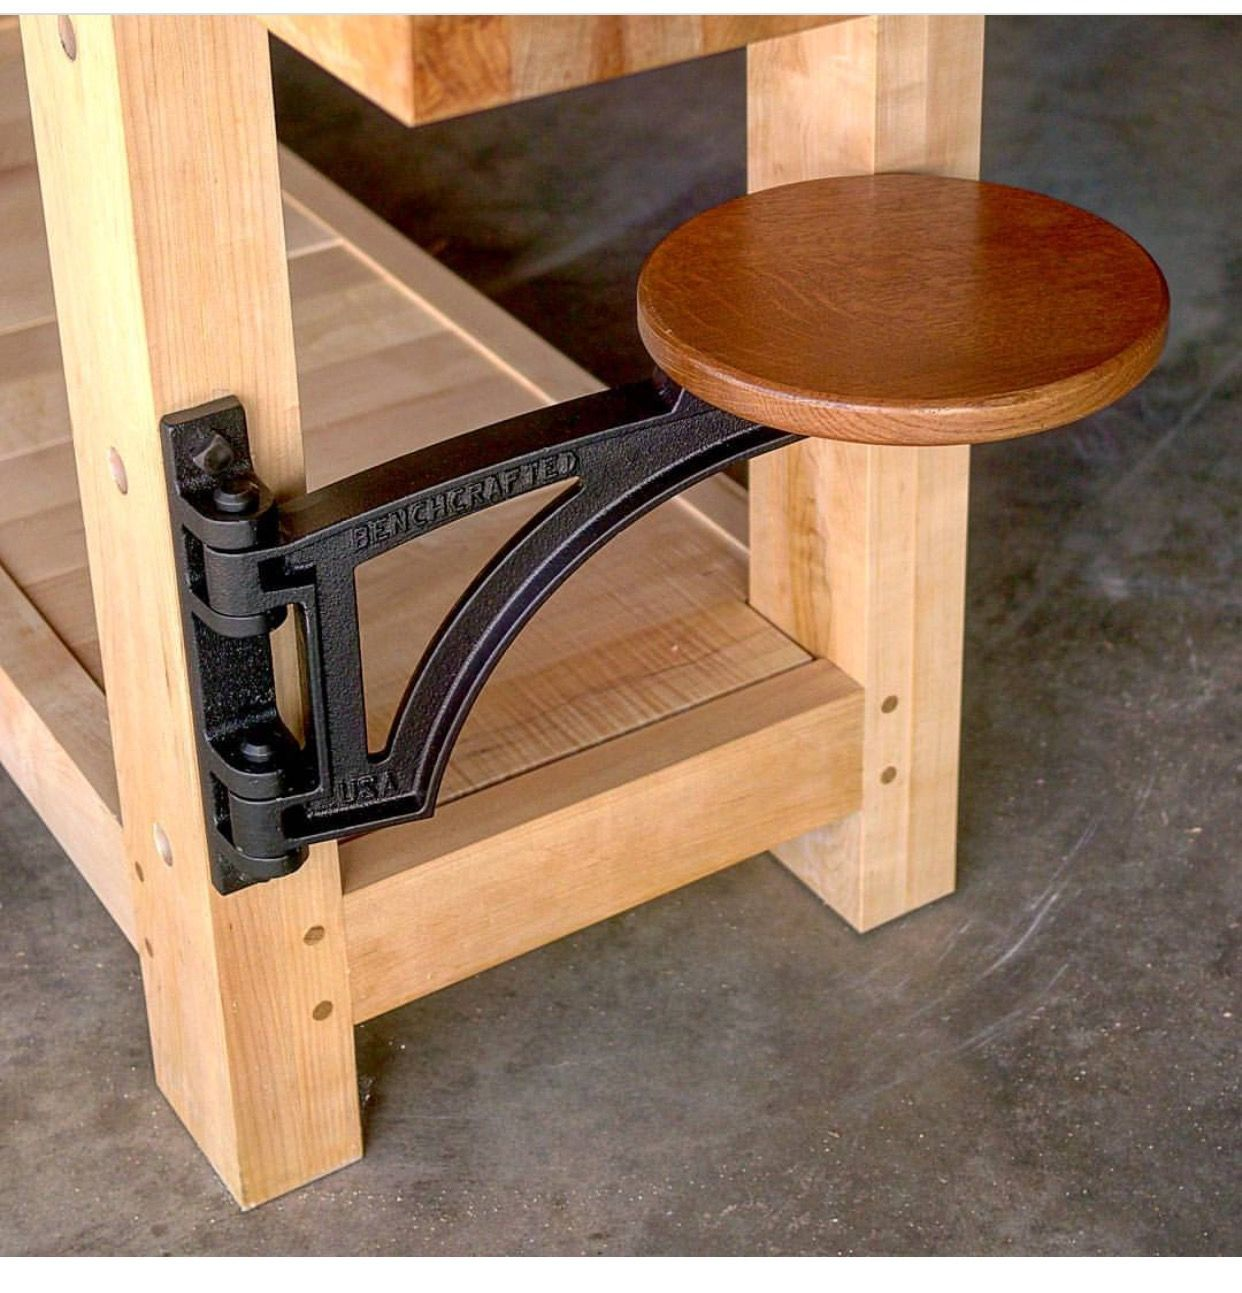 16+ AweInspiring Wood Working Bench Decks Ideas is part of Woodworking furniture plans - Astonishing Wood Working Bench Decks Ideas 16+ AweInspiring Wood Working Bench Decks Ideas